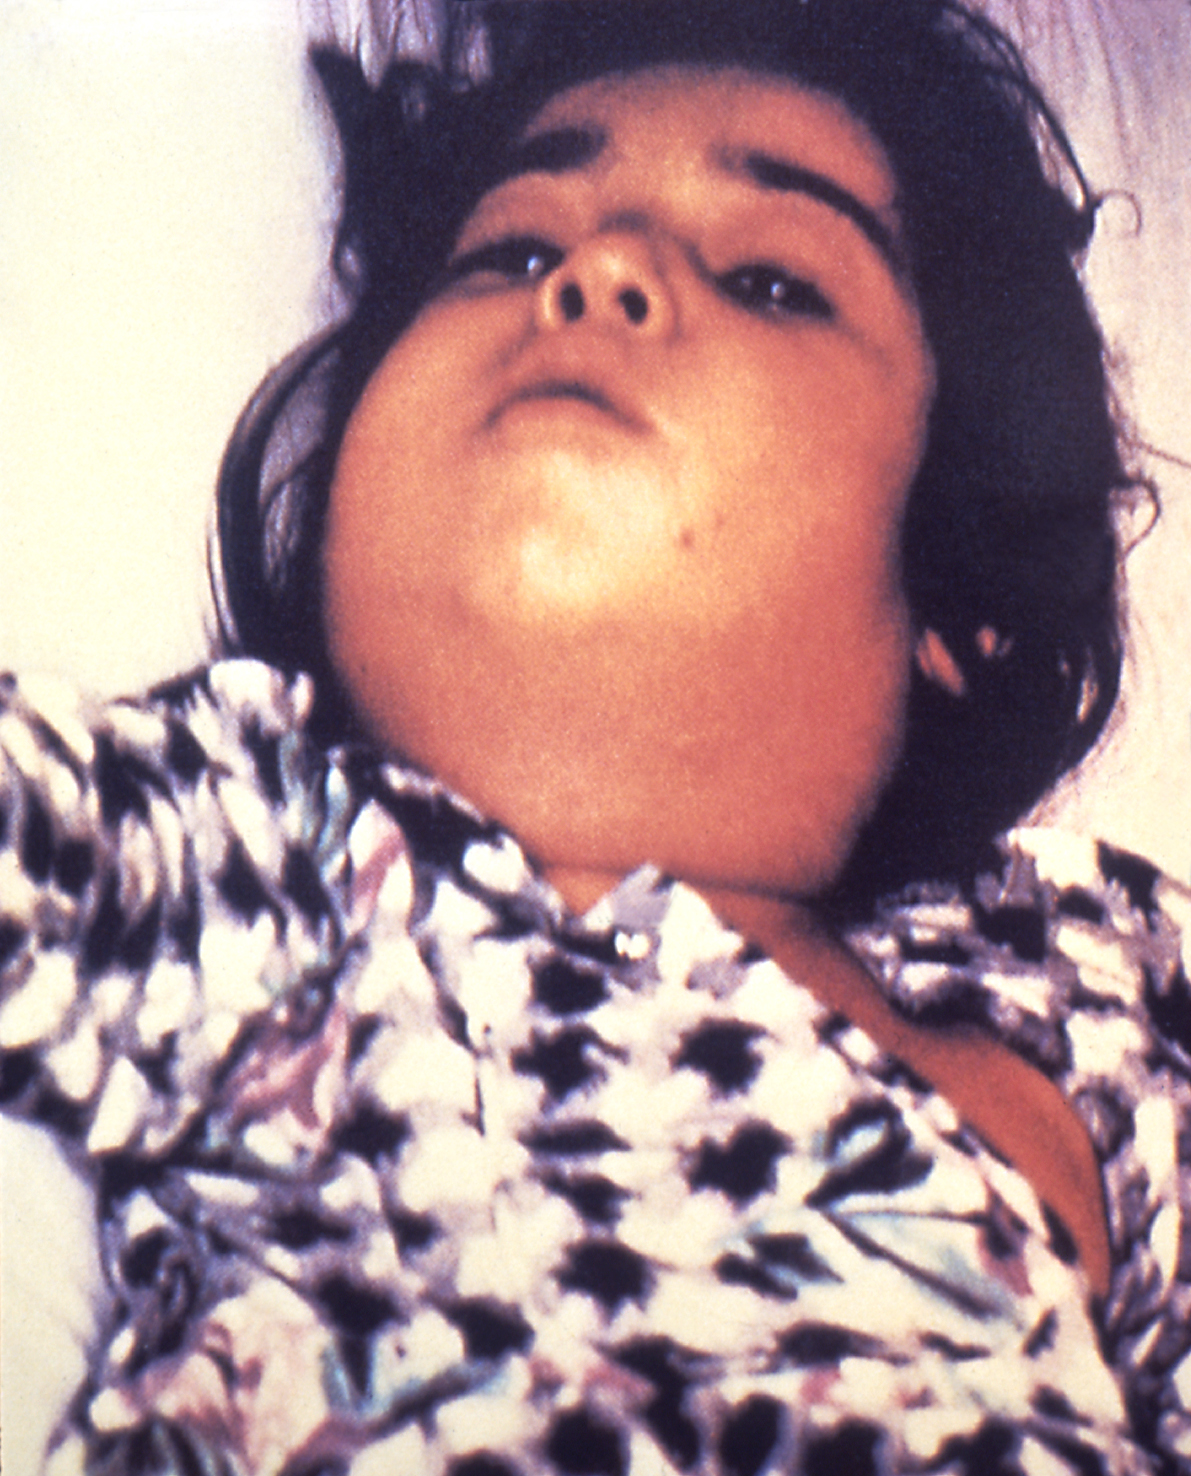 "1995 Dr.?? This child with diphtheria presented with a characteristic swollen neck, sometimes referred to as ""bull neck"". Diphtheria is an acute bacterial disease involving primarily the tonsils, pharynx, larynx, nose, skin, and at times other mucous membranes. The mucosal lesion is marked by a patch or patches of an adherent grayish membrane with a surrounding inflammation."